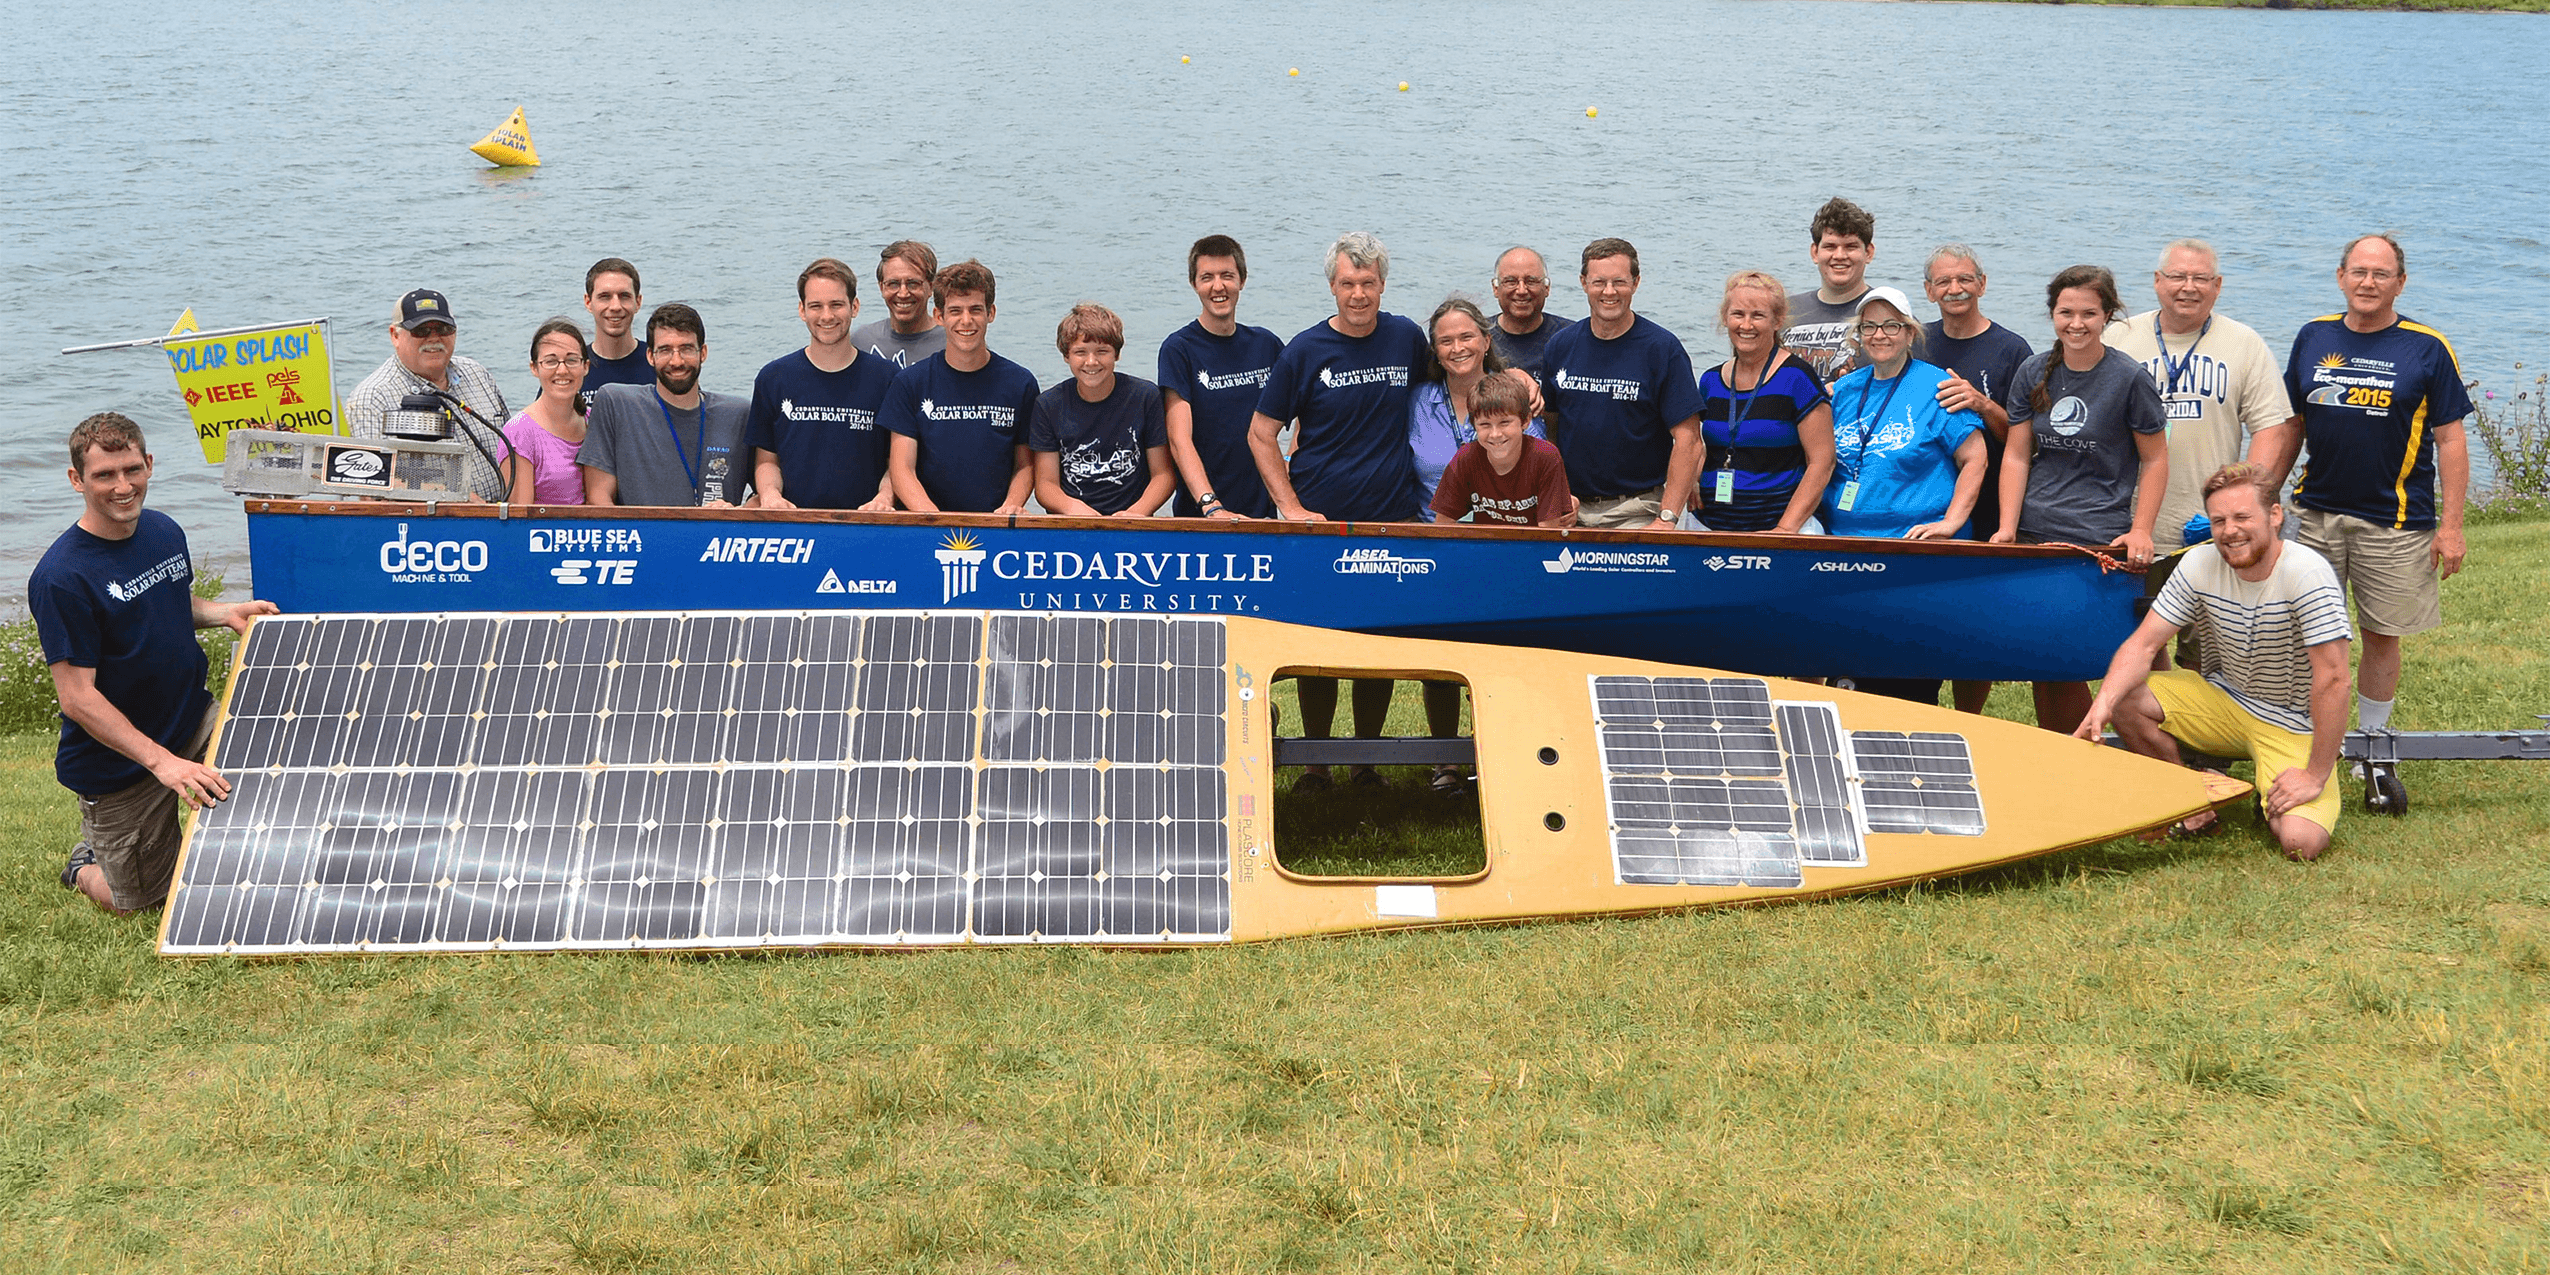 new eagle is a proud sponsor of the cedarville university solar boat team